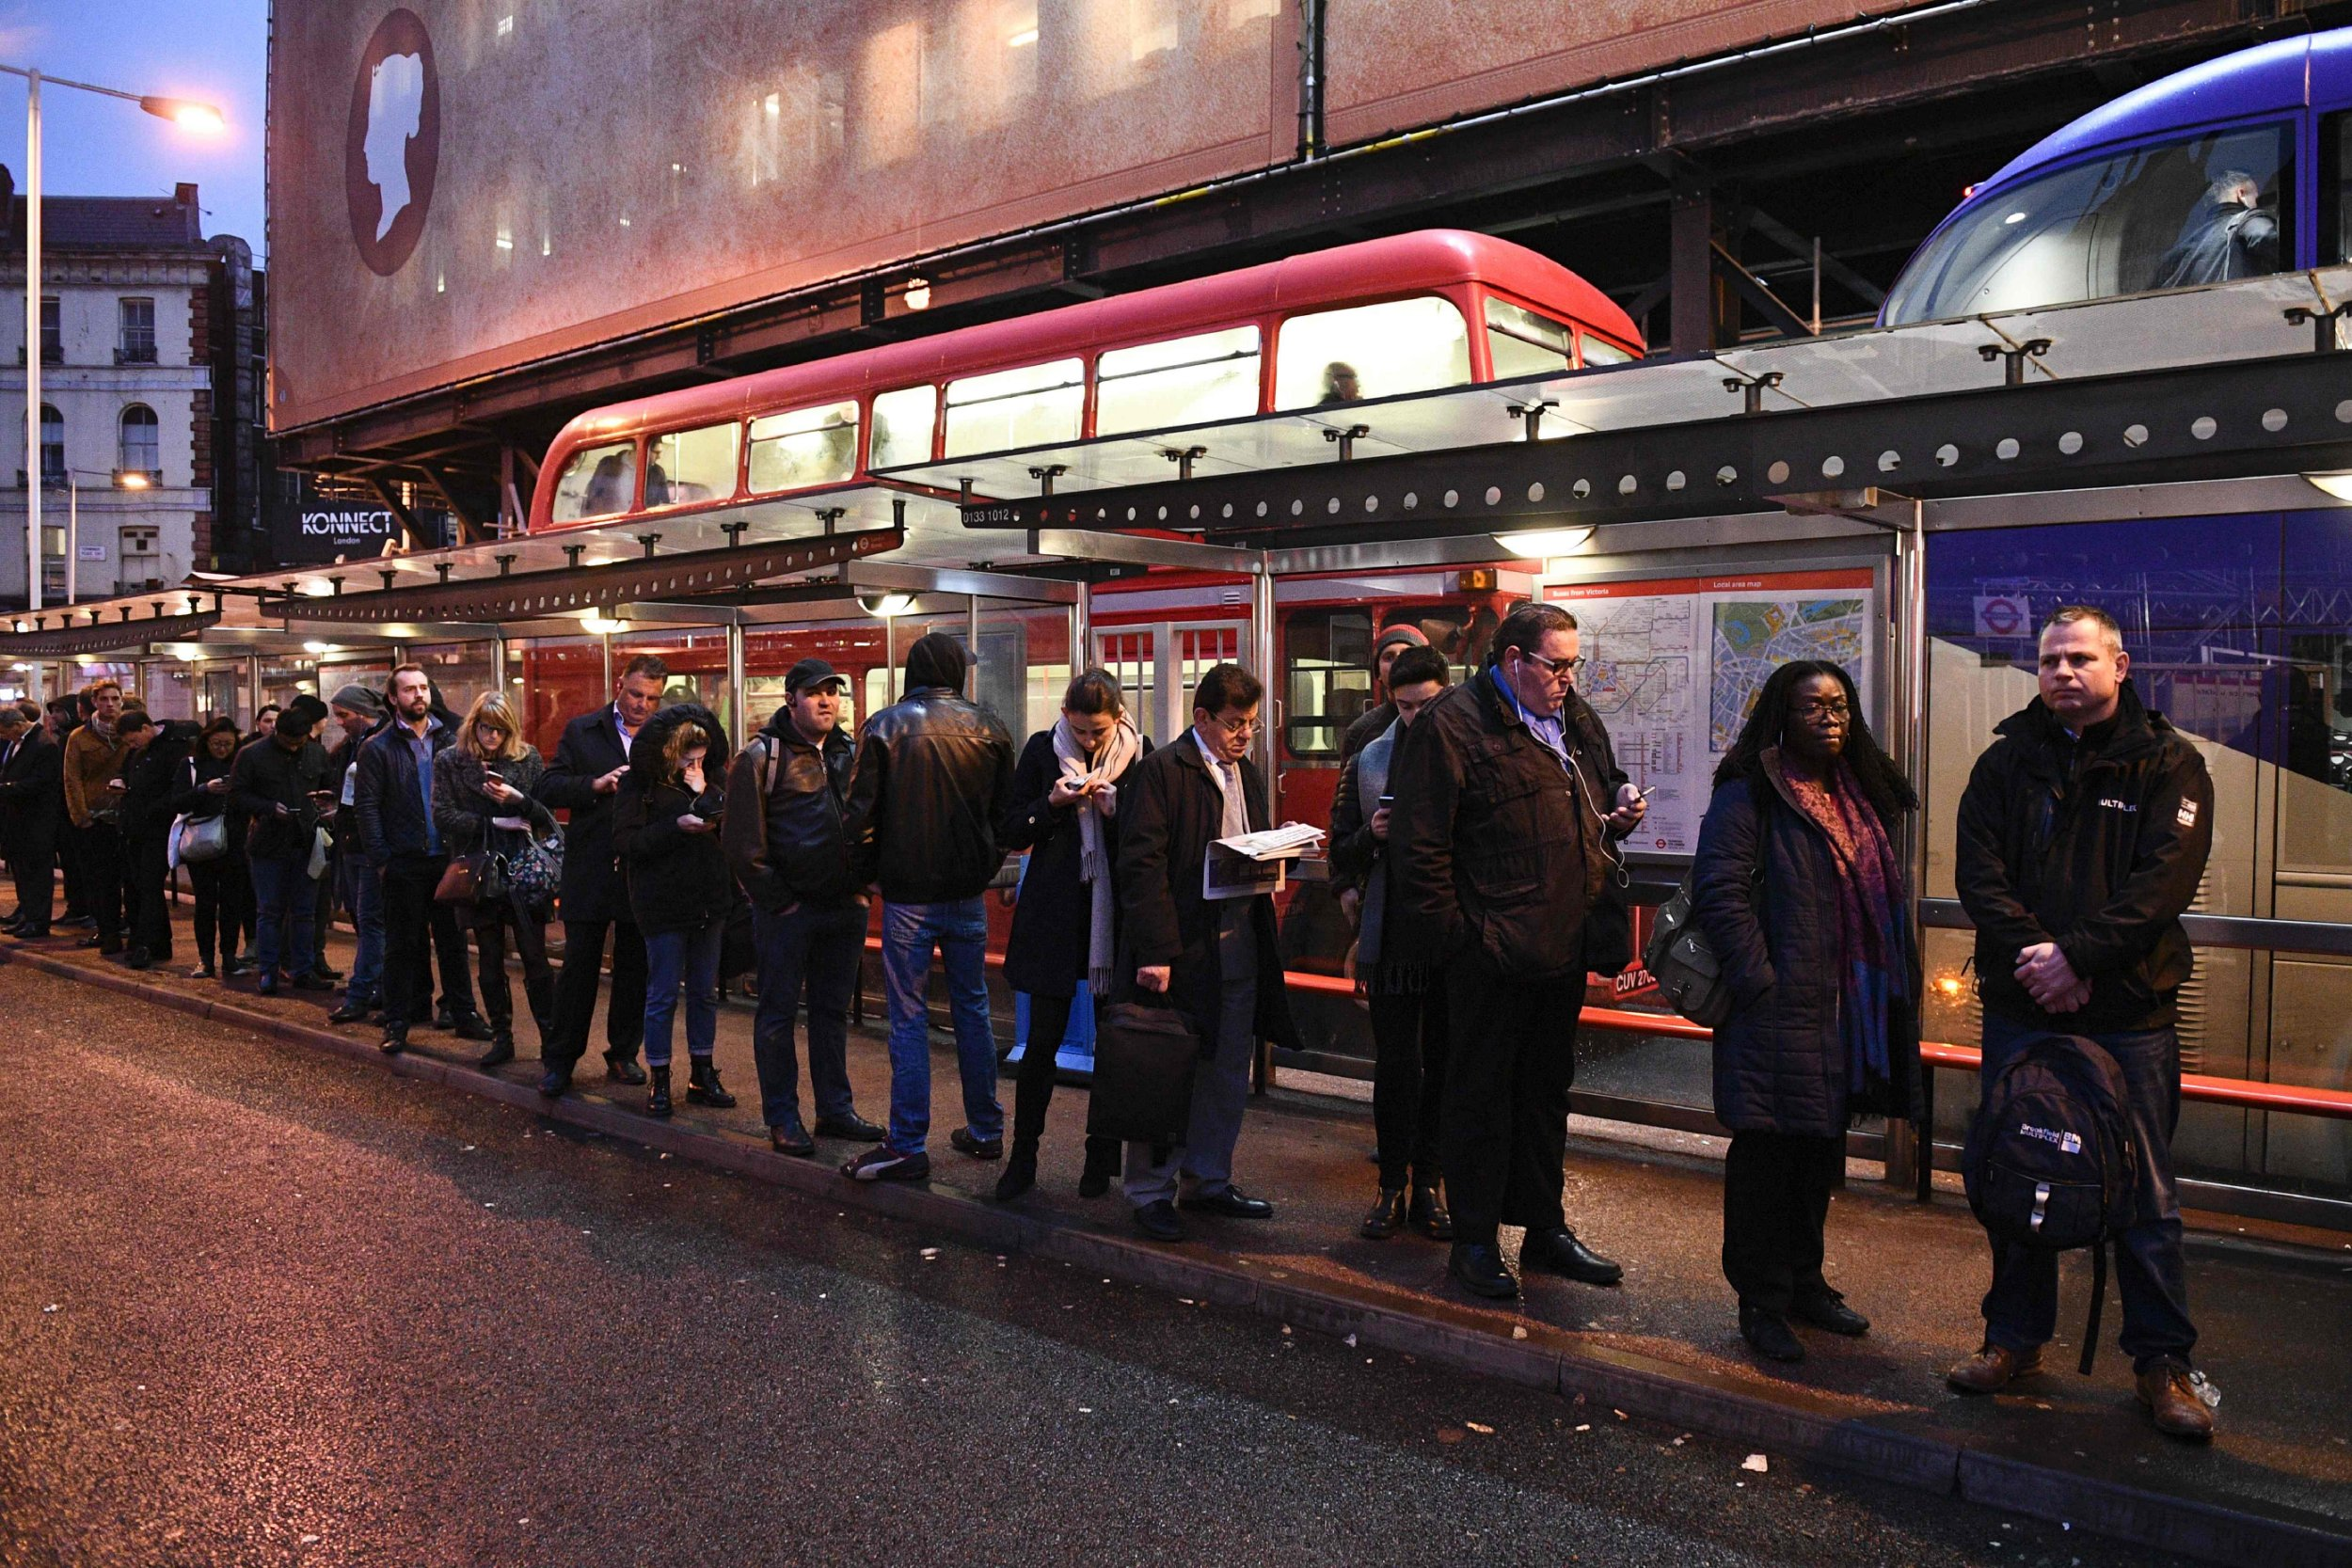 Commuters queue at Victoria bus station in central London on January 9, 2017 during a 24-hour tube strike. A strike on the London Underground caused major disruption on January 9, as almost all stations in the city centre shut and services were cancelled in a dispute over jobs and ticket office closures. Millions of passengers were forced to take overcrowded buses or overland trains, or work from home, after the 24-hour walk-out by the RMT union. / AFP PHOTO / Justin TALLISJUSTIN TALLIS/AFP/Getty Images